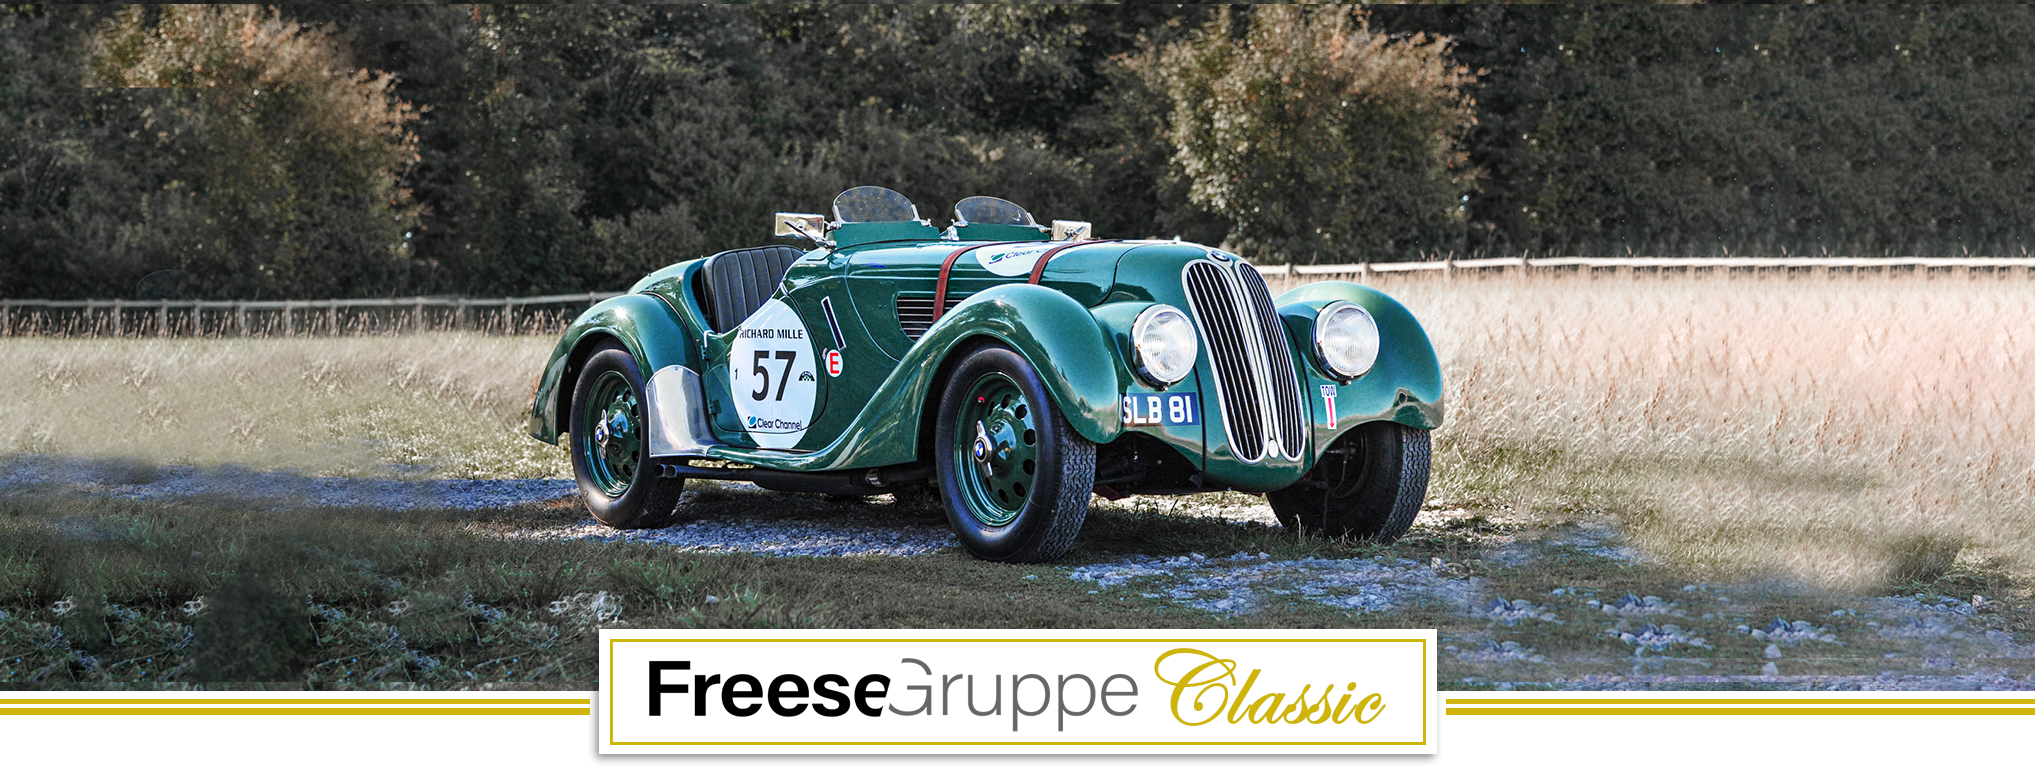 Freese Gruppe Classic Header 2